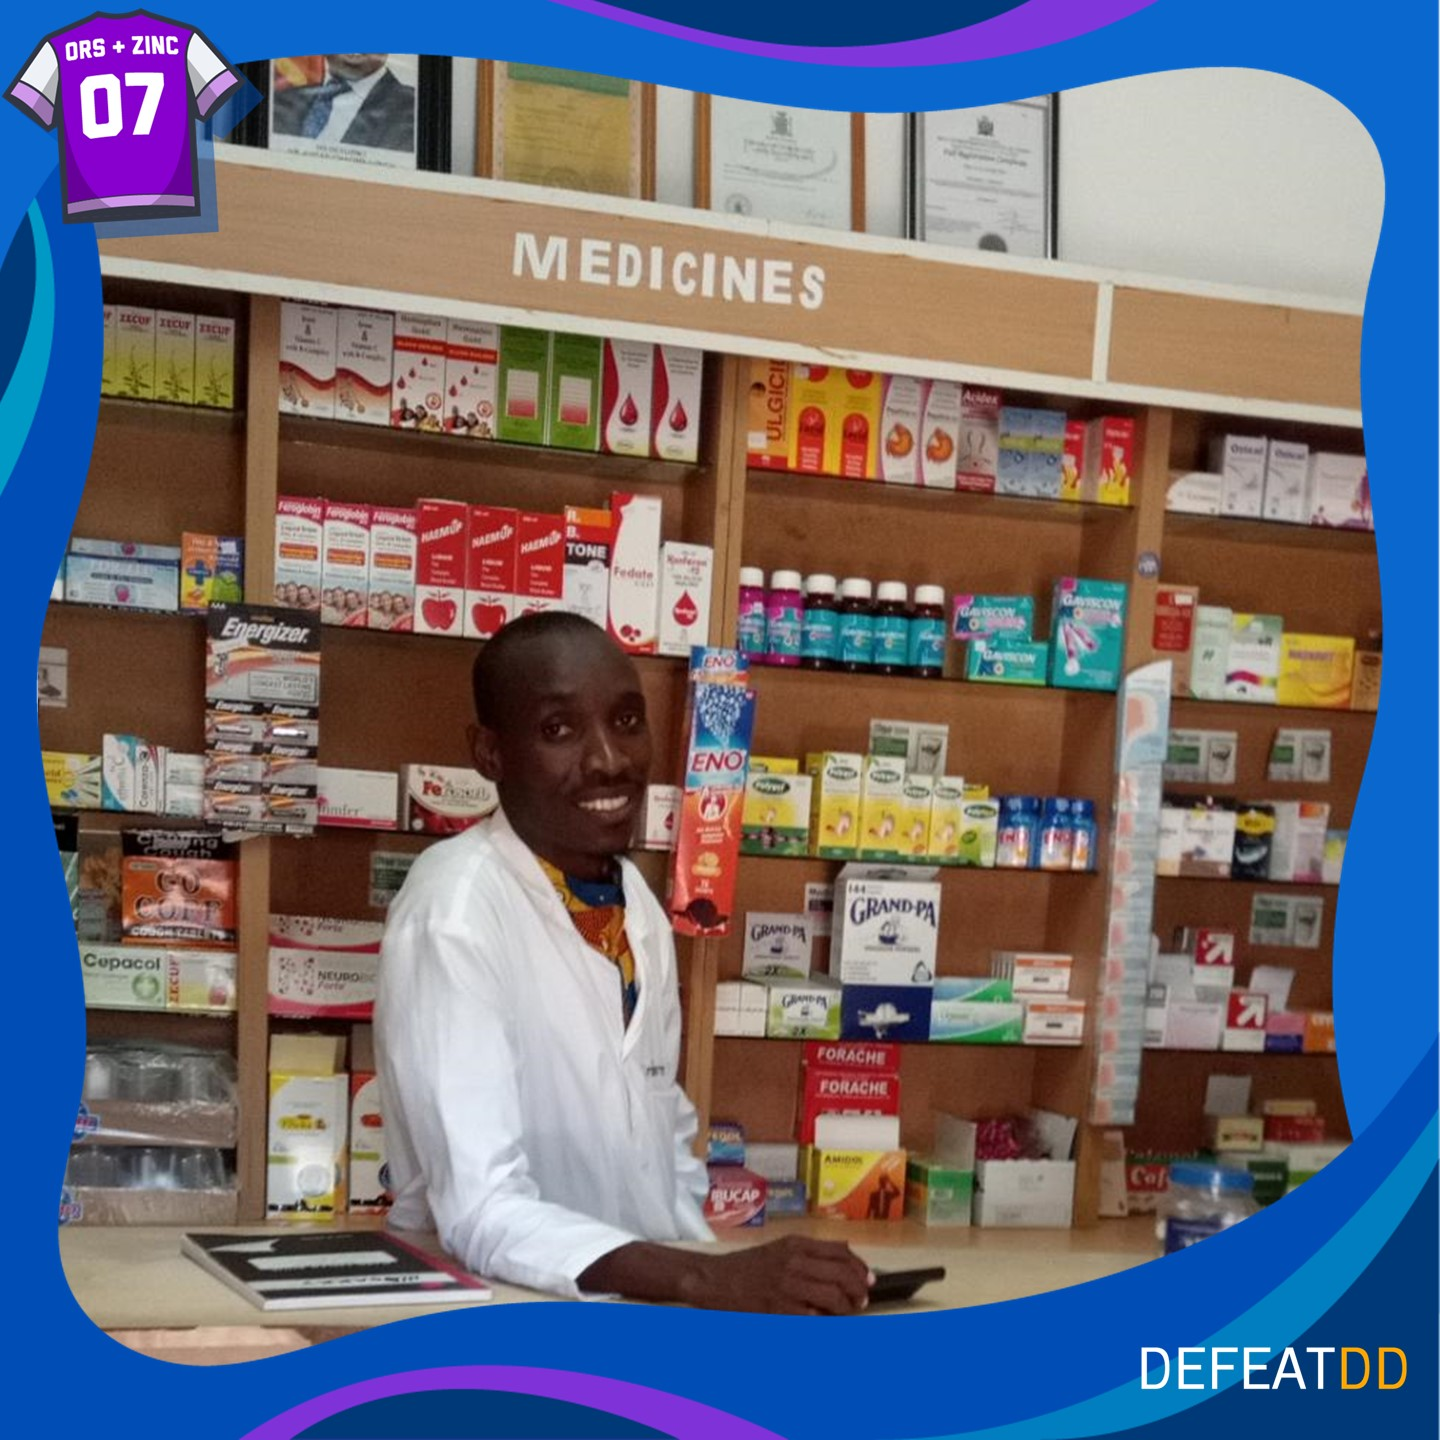 A pharmacist from Zambia smiling behind a counter